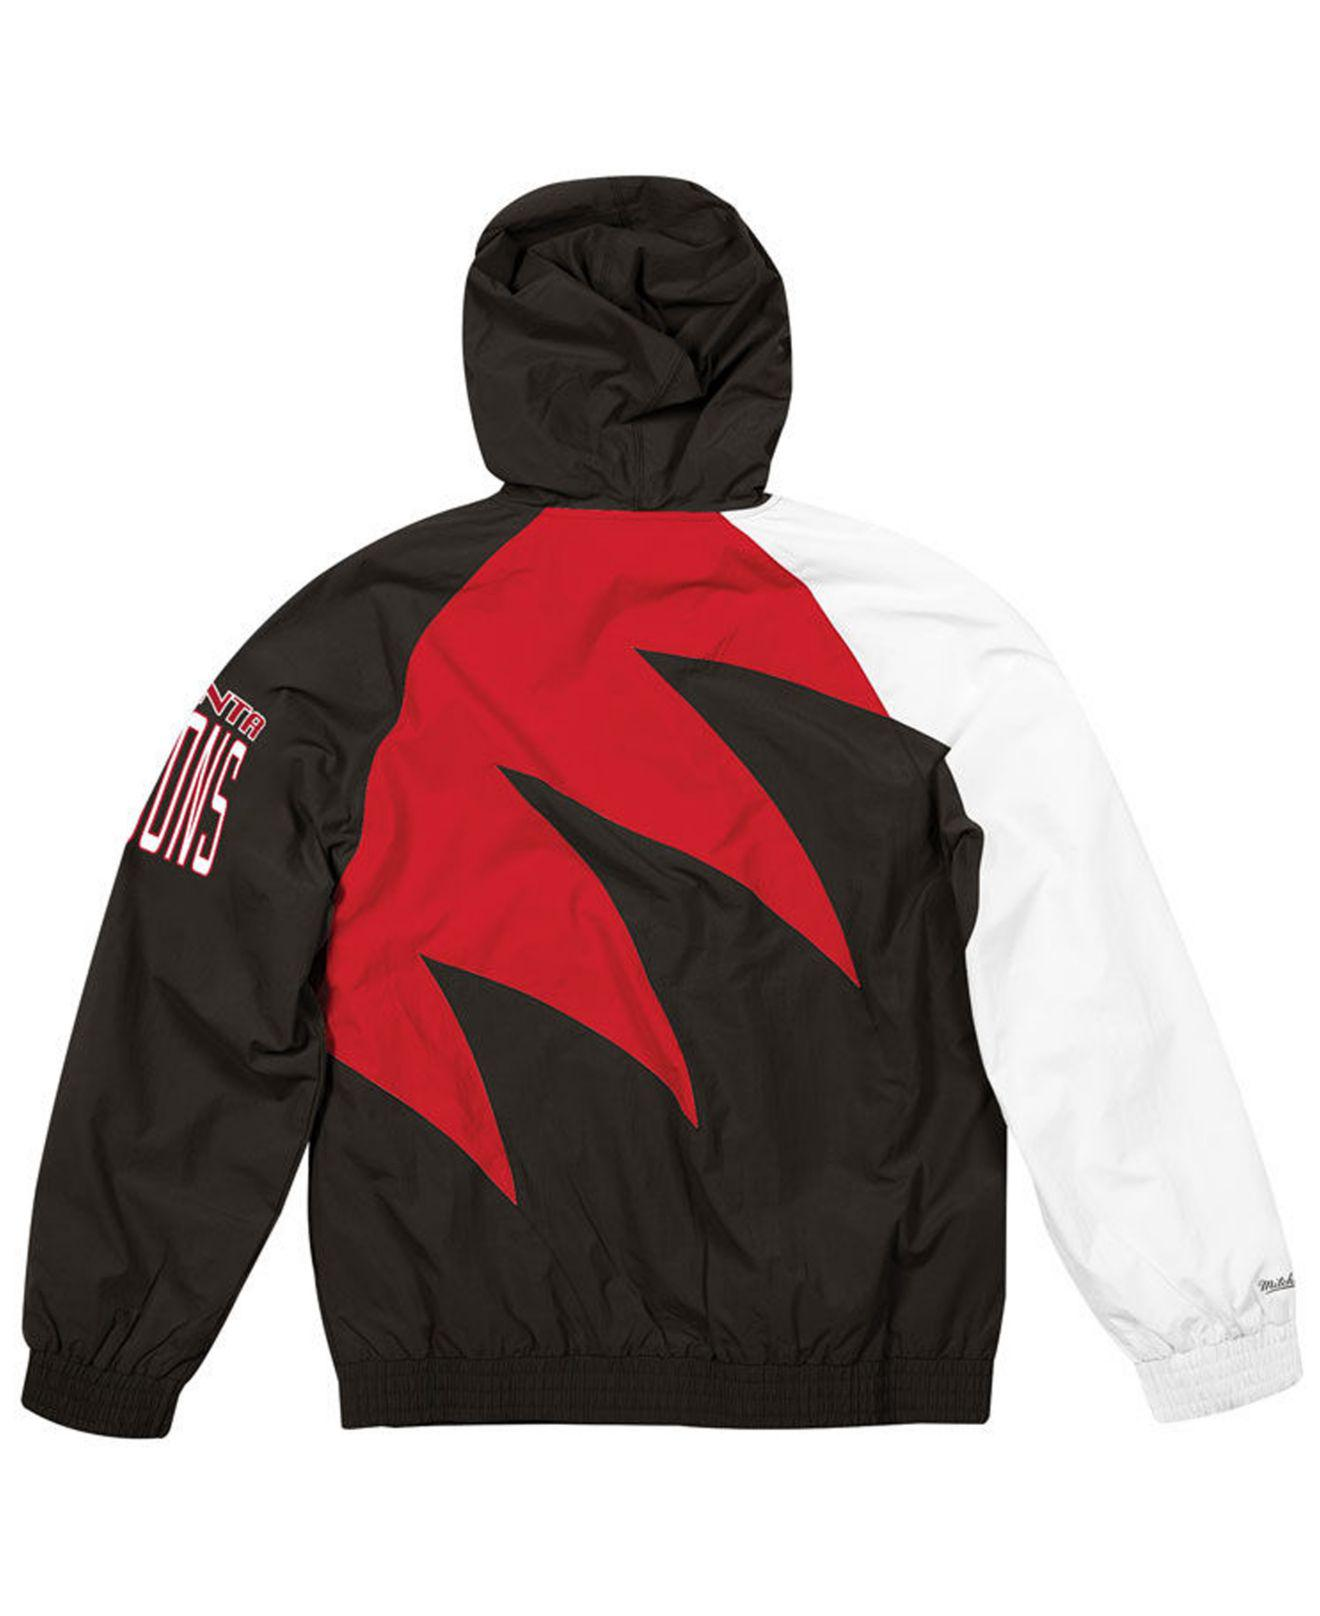 243ef06e6b8 Lyst - Mitchell & Ness Atlanta Falcons Shark Tooth Jacket in Red for Men